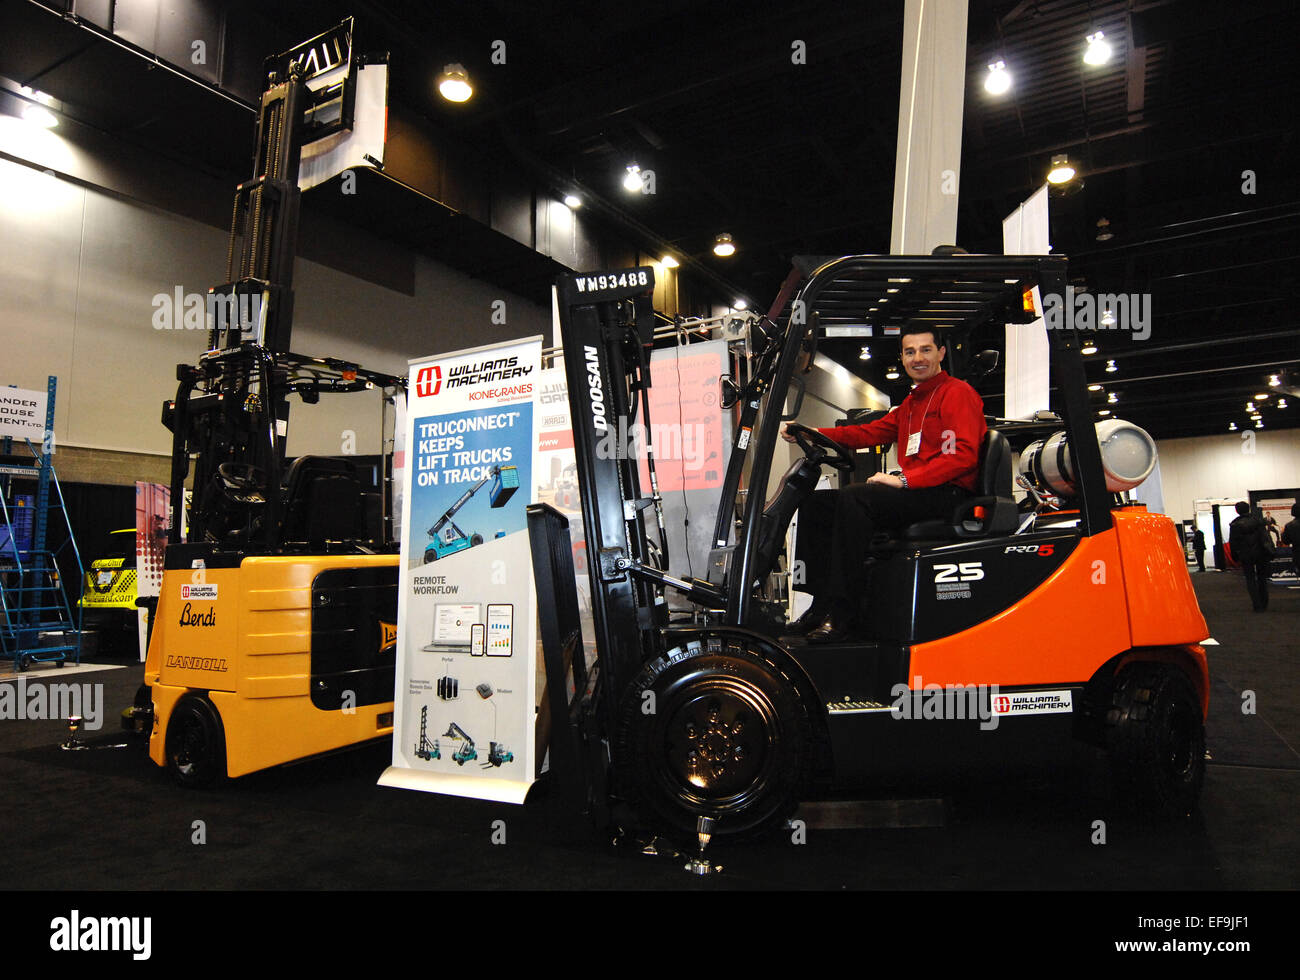 Supply Chains Stockfotos & Supply Chains Bilder - Alamy